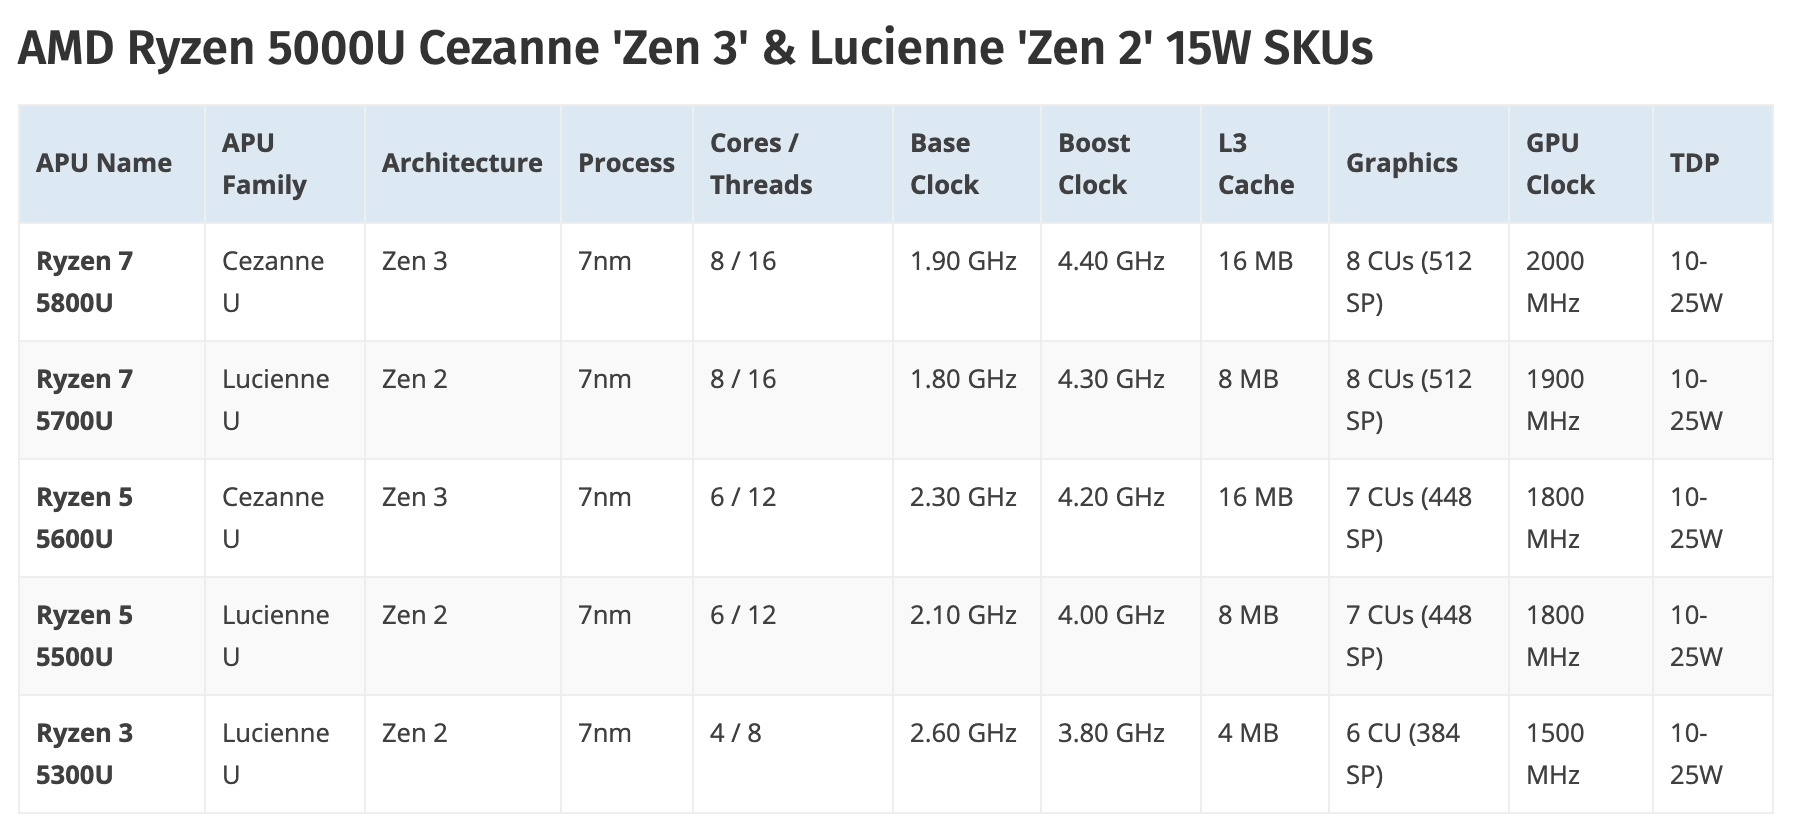 Sforum - Latest Technical Information Page anhmanhinh-2021-01-15-at-17.13.01 AMD Ryzen 5000 Mobile Series: Very powerful, supports overlocking, but be careful not to make a mistake !!!